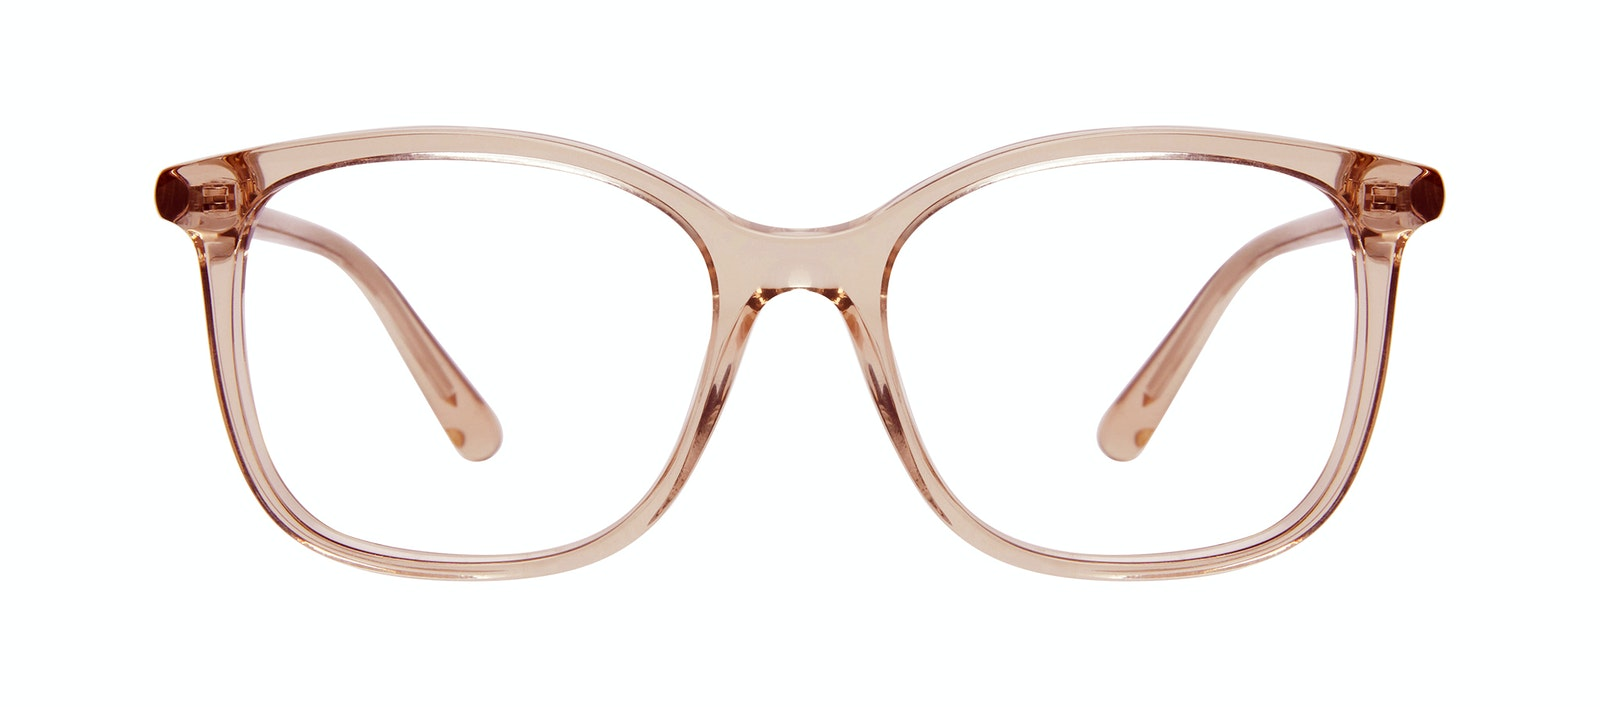 Affordable Fashion Glasses Square Eyeglasses Women Luna Rose Front